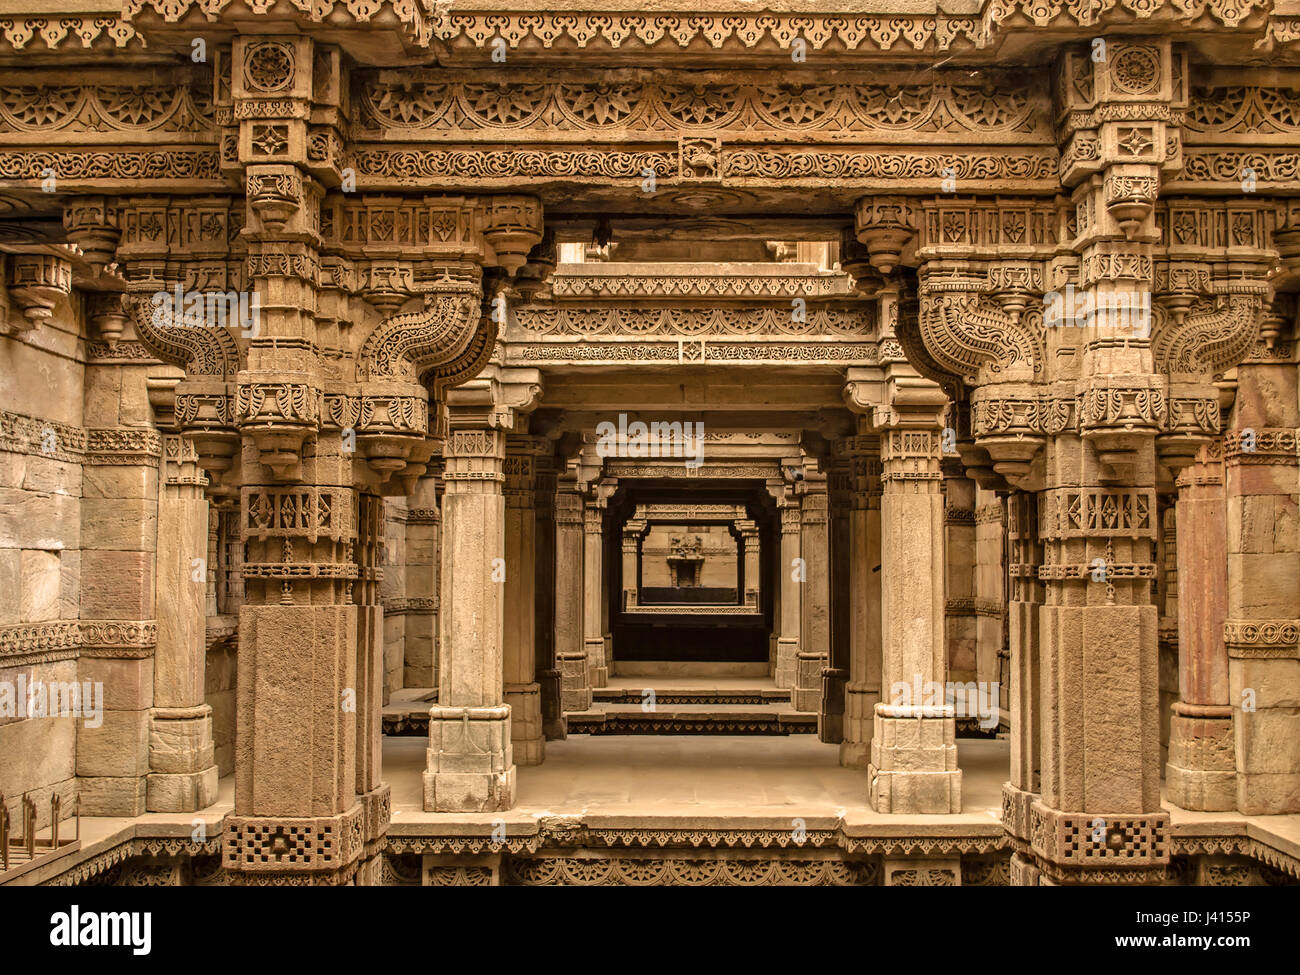 Adalaj stepwell - Indian Heritage tourist place, ahmedabad, gujarat - Stock Image